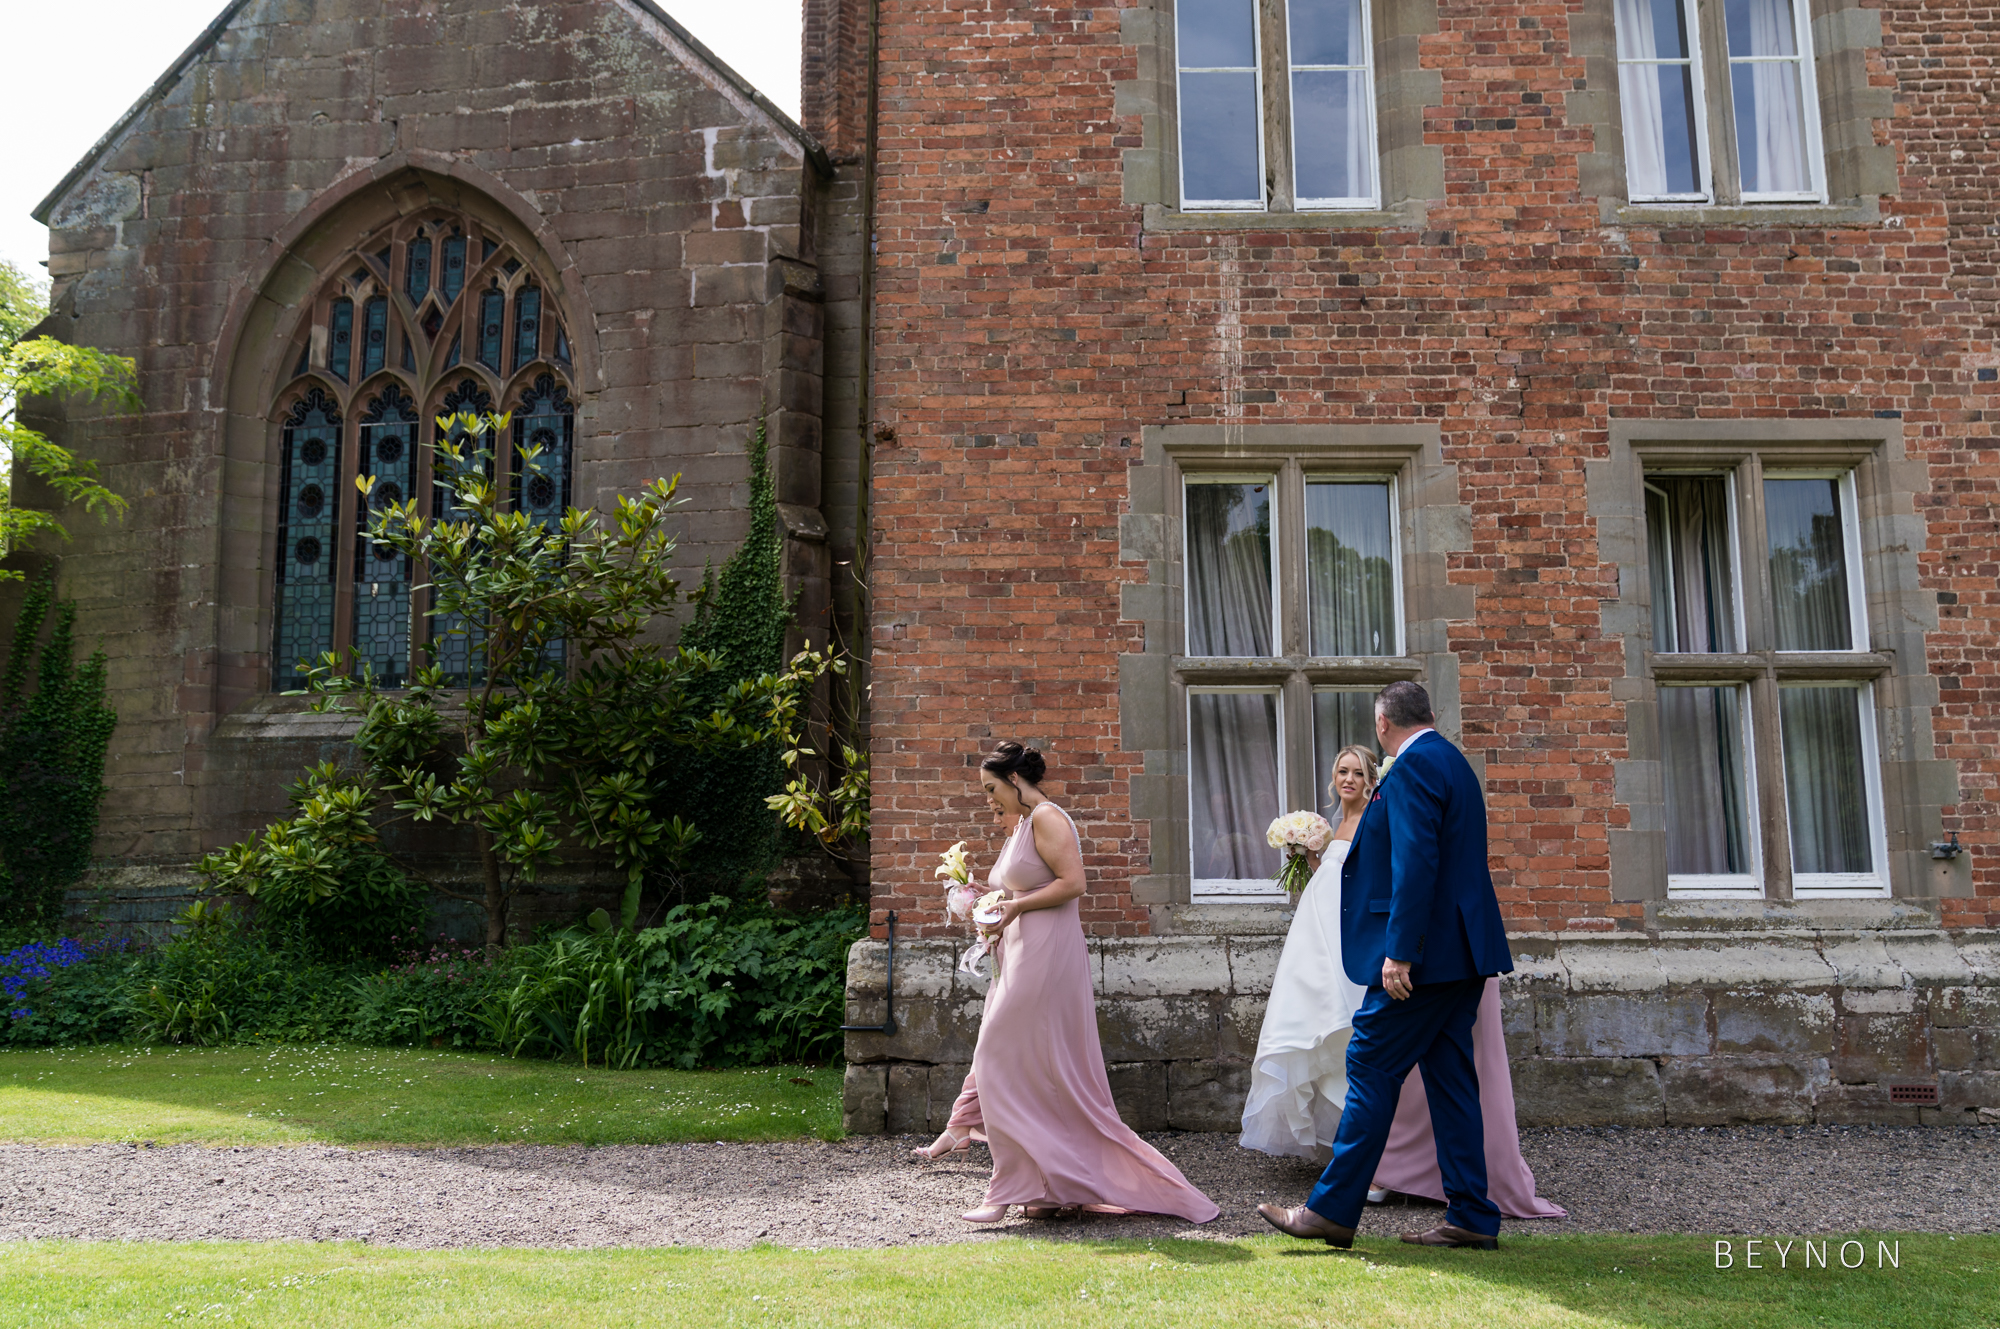 The bride walks to the chapel for the ceremony